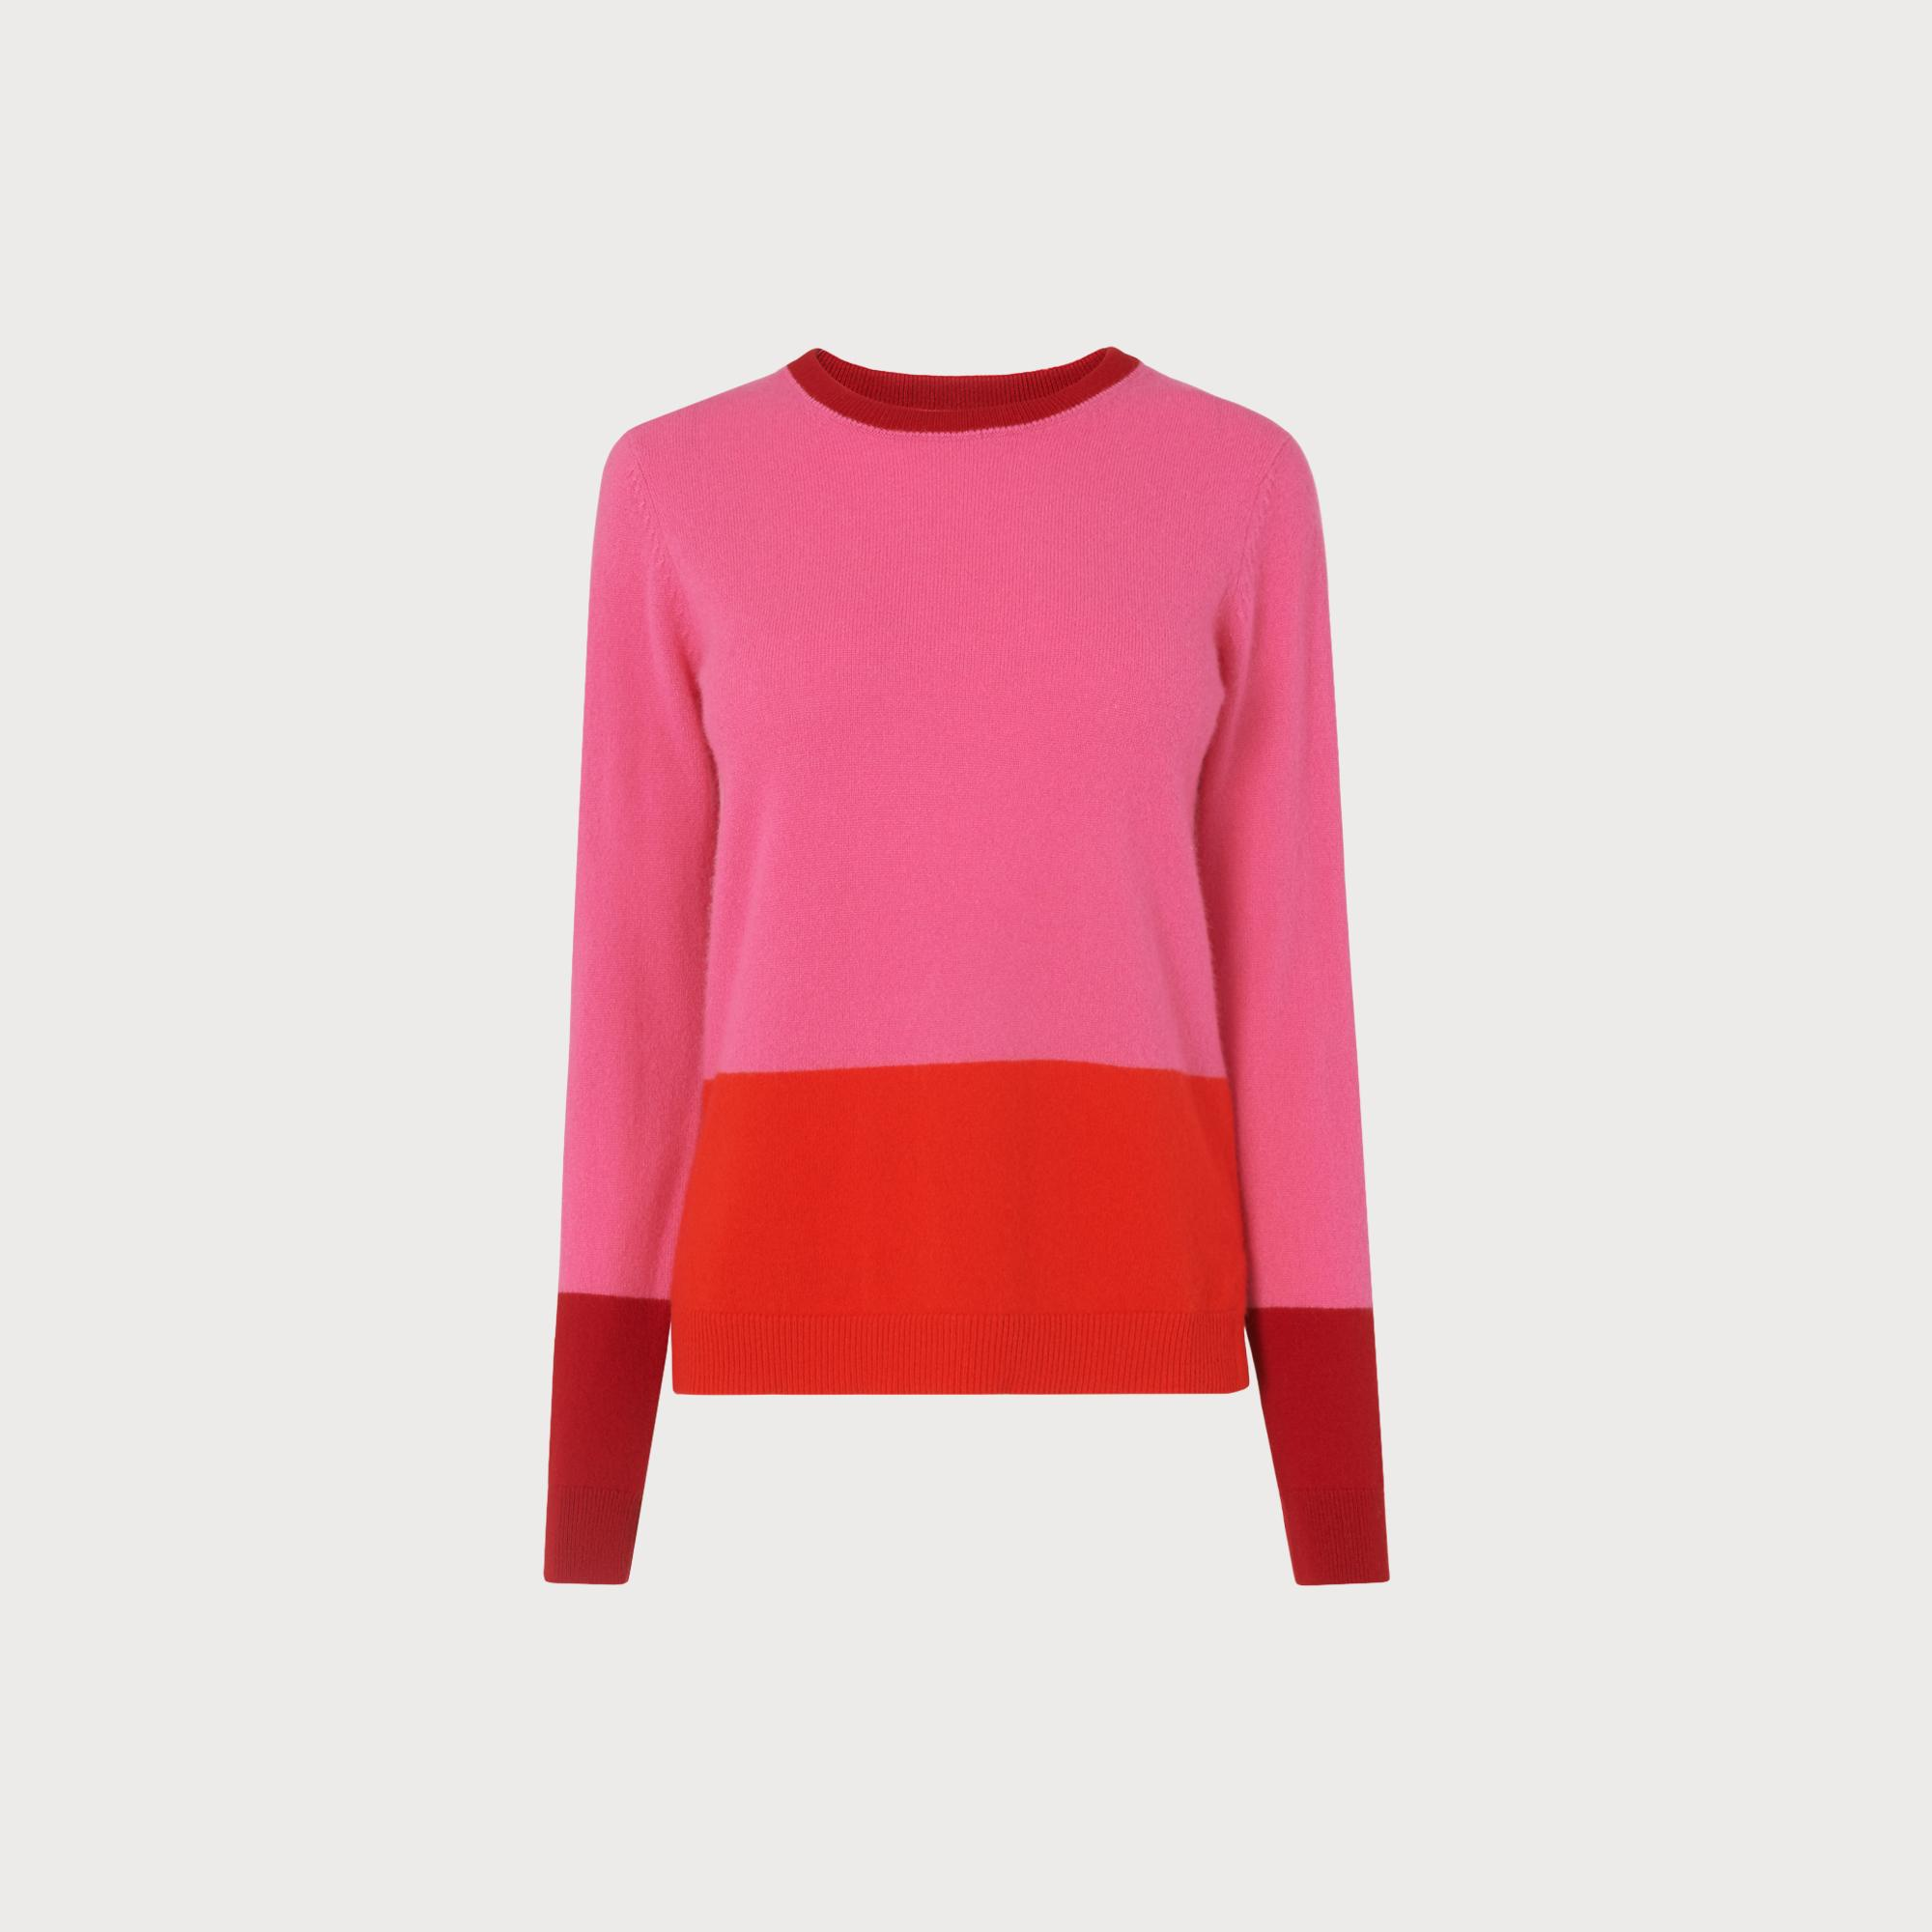 Carina Pink Color Block Sweater View All Clothing Collections Inside Flats Cariana Navy 38 Lkbennett London